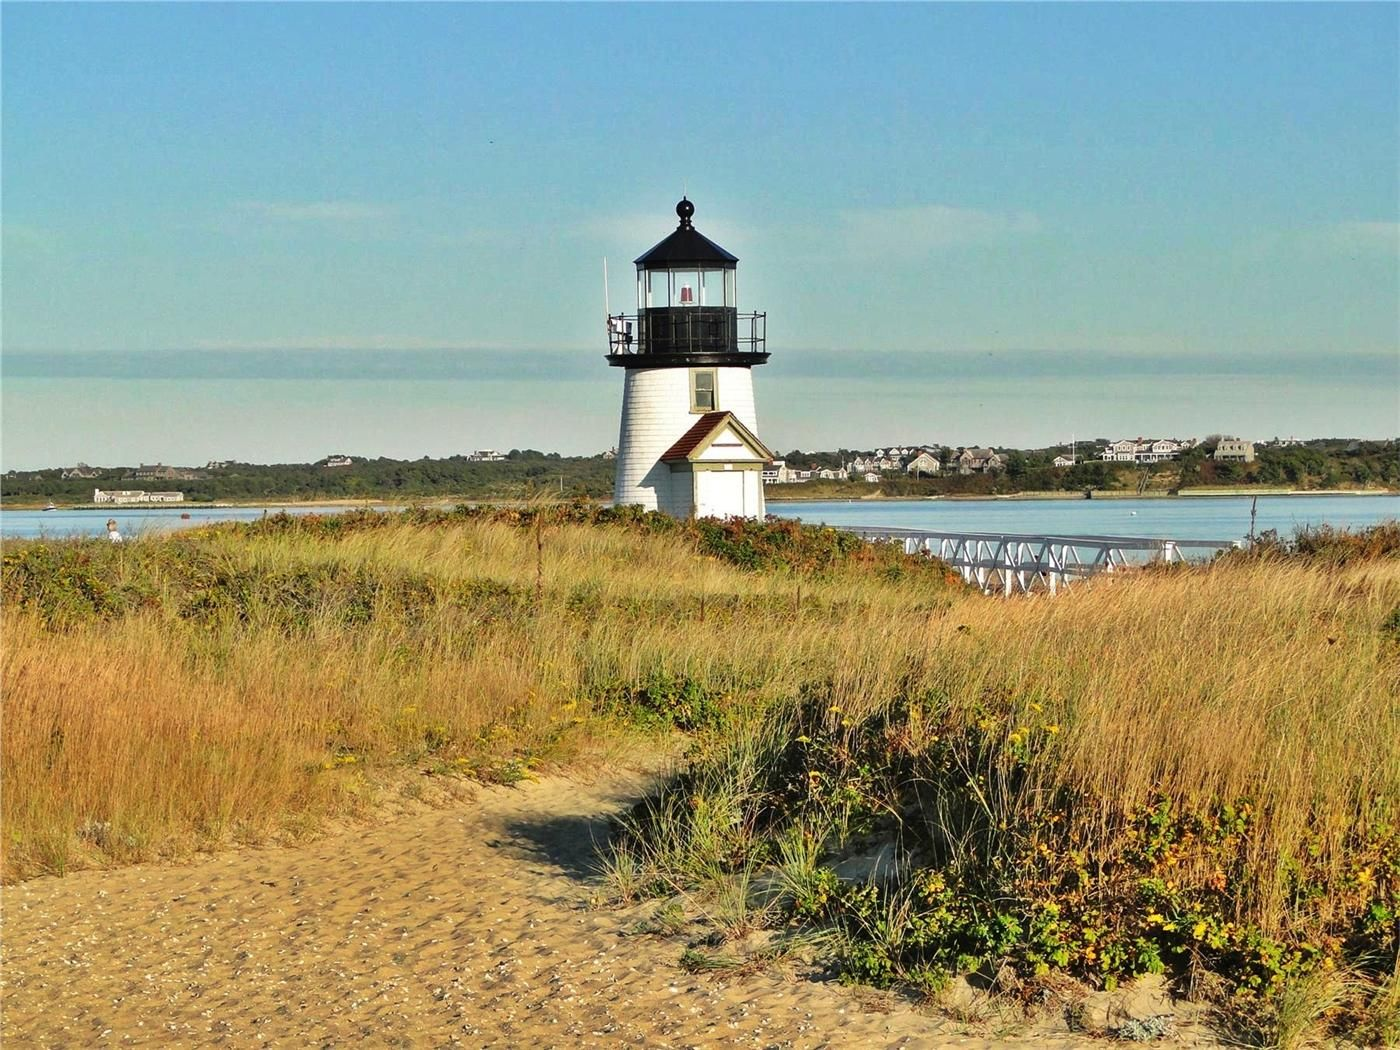 Walk to Jetties or Childrens beach the Brant Point